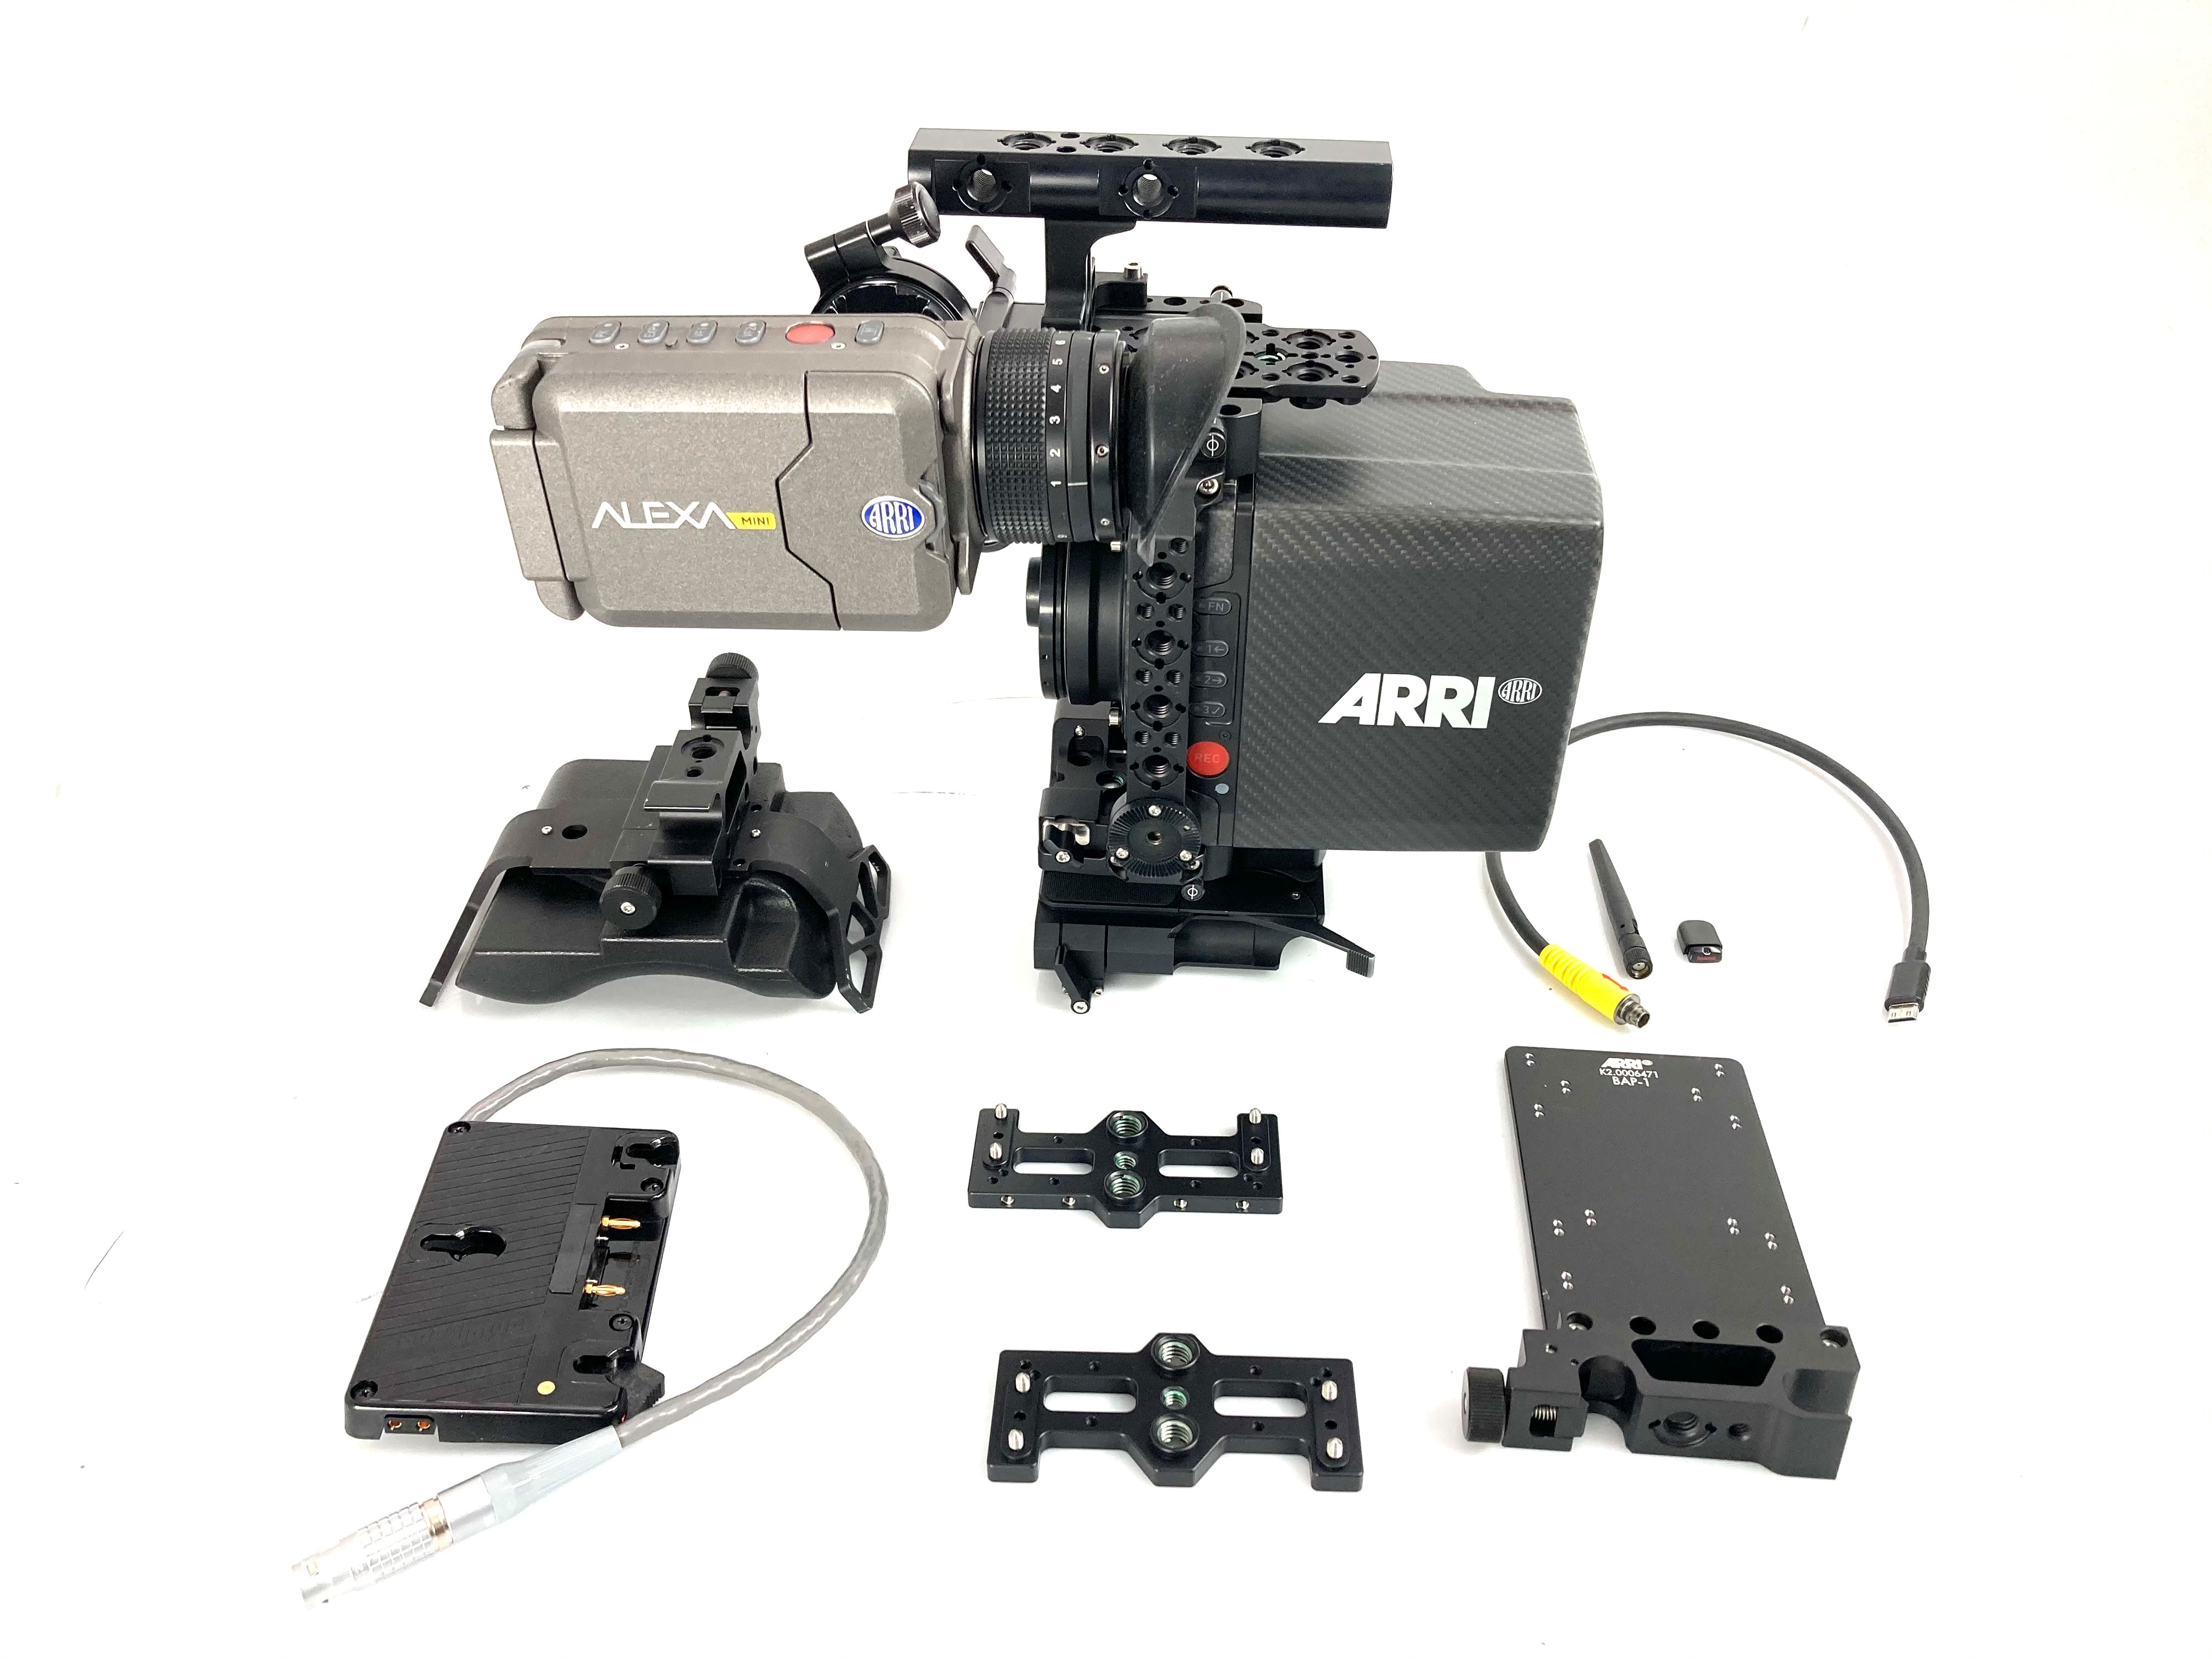 ARRI Alexa Mini with 4:3 / ARRIRAW Licenses - Image #1